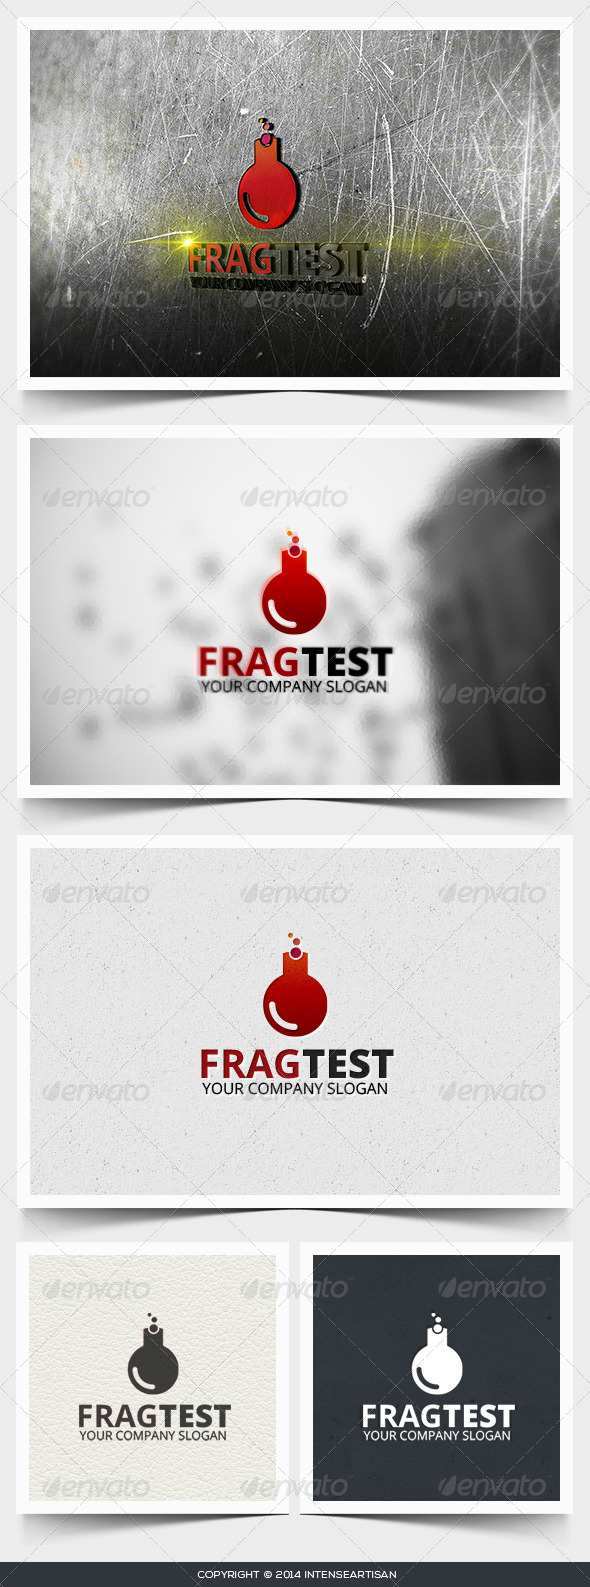 Frag Test Logo Template